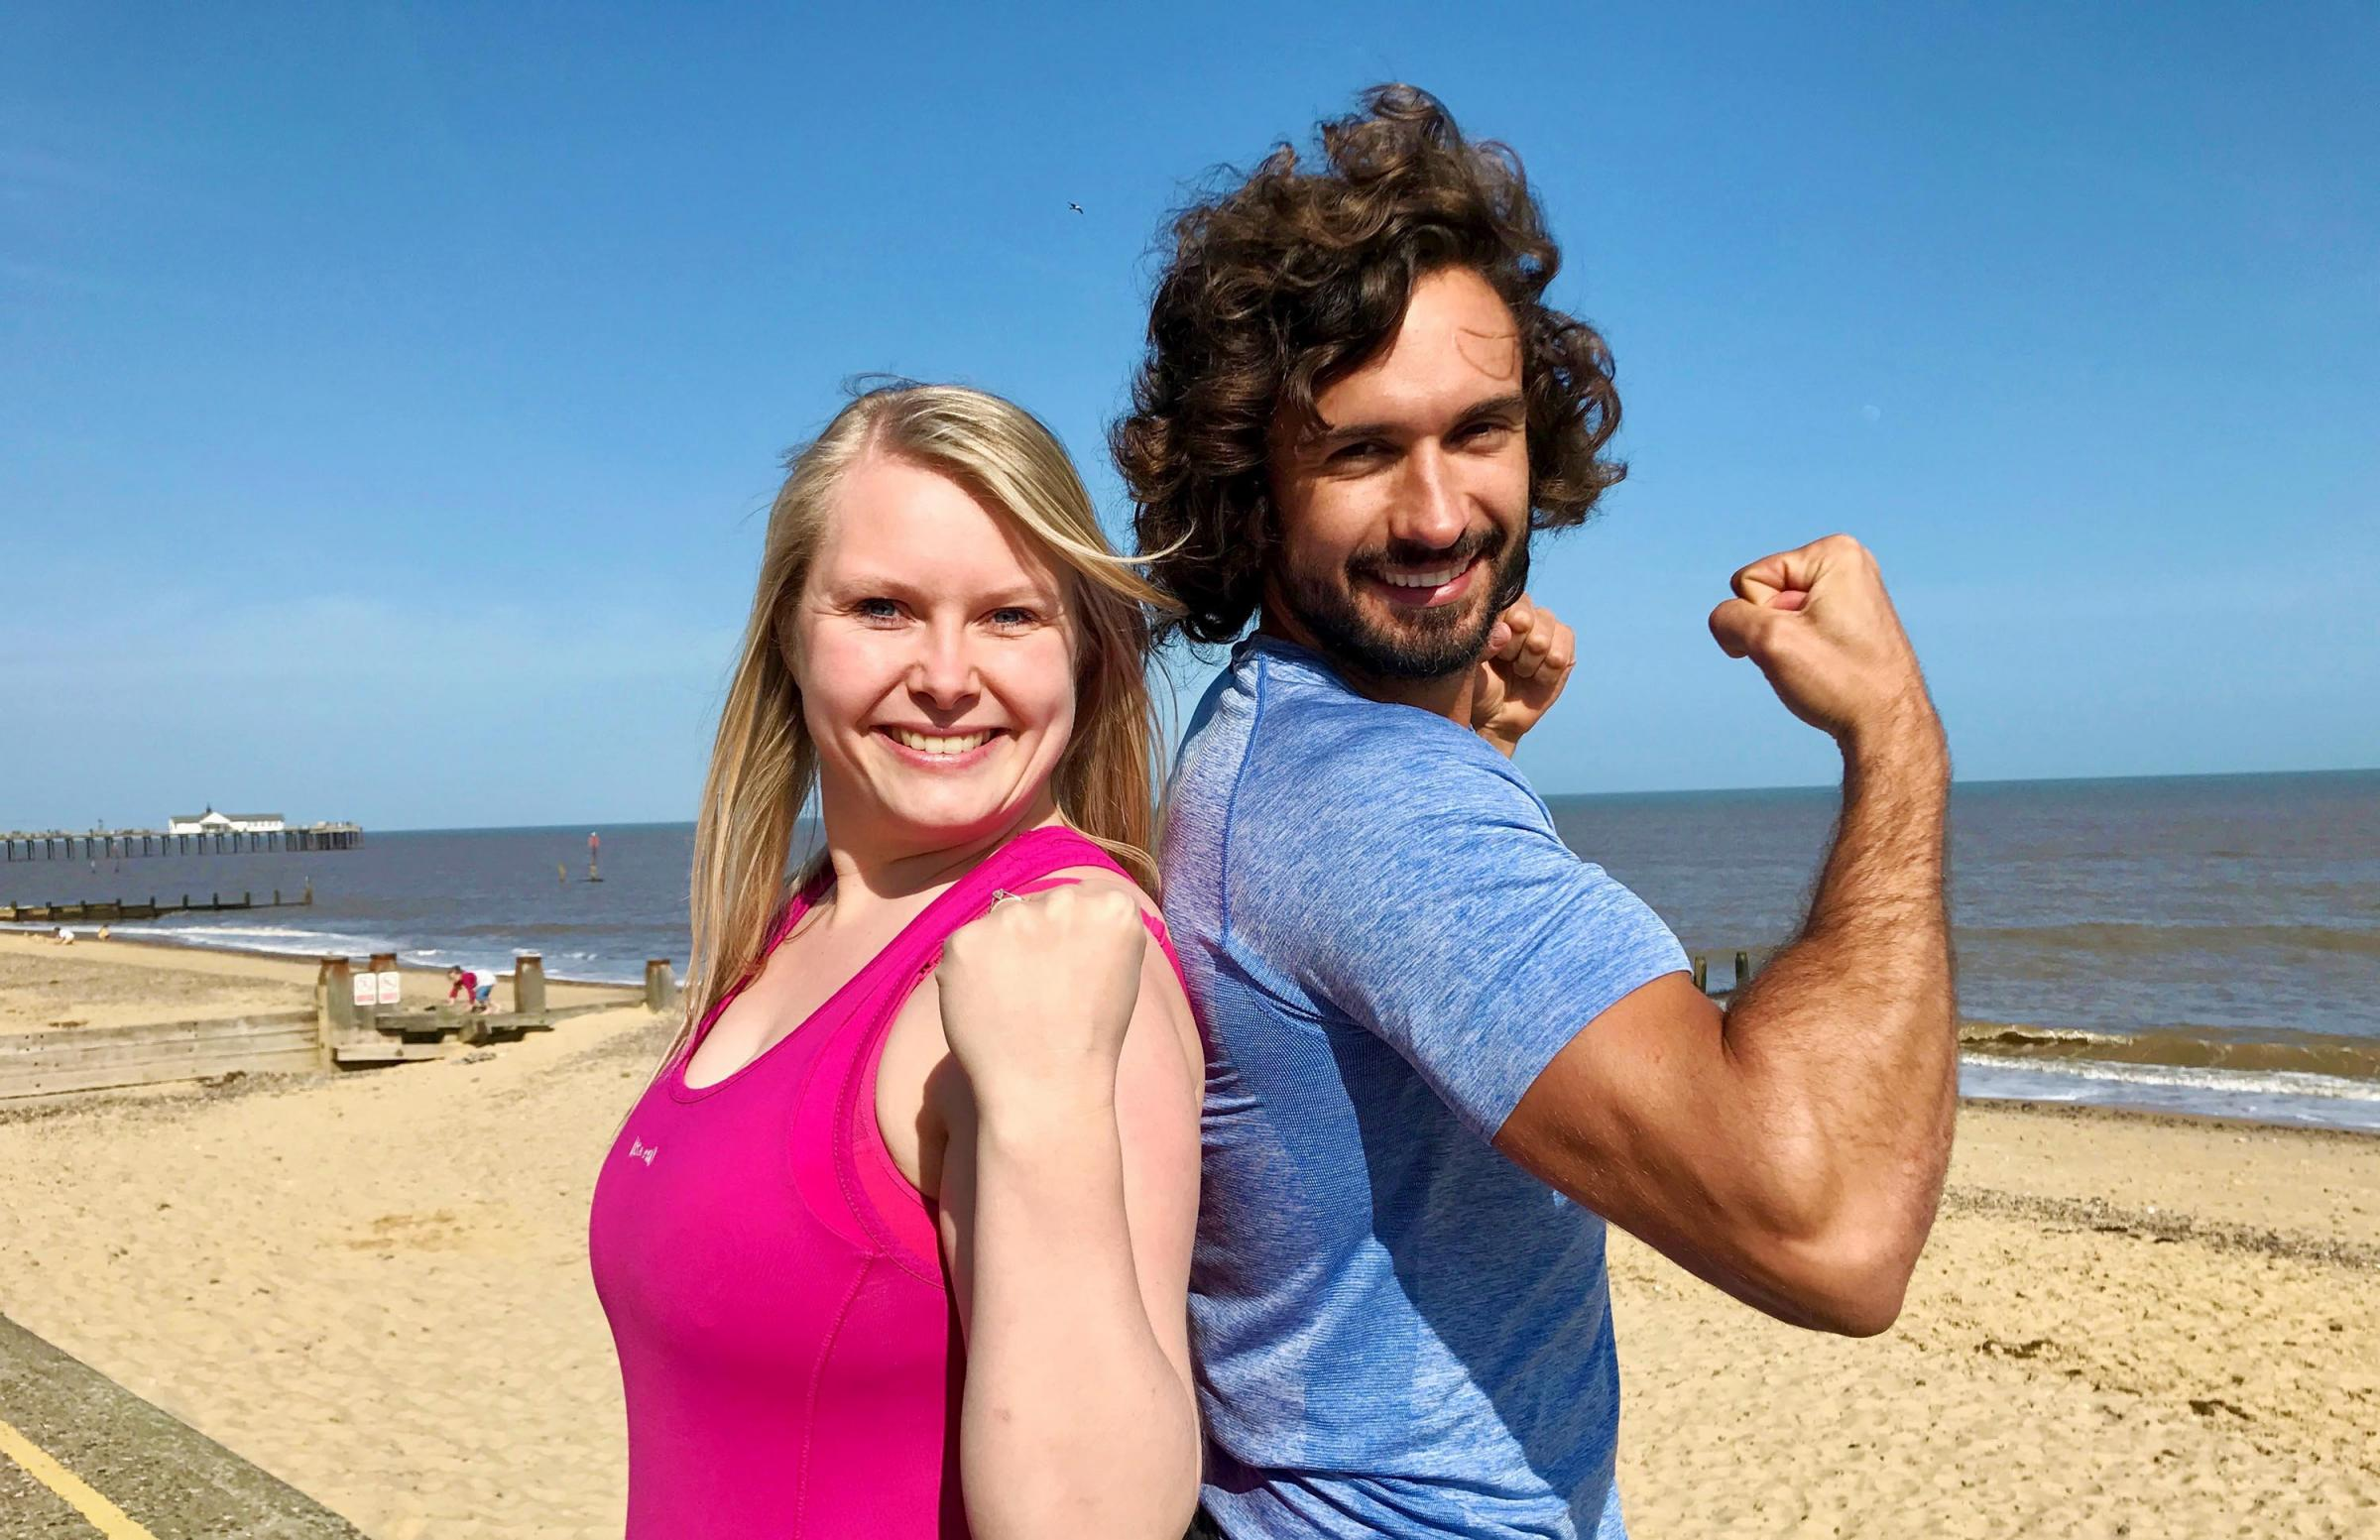 Health Guru Joe Wicks